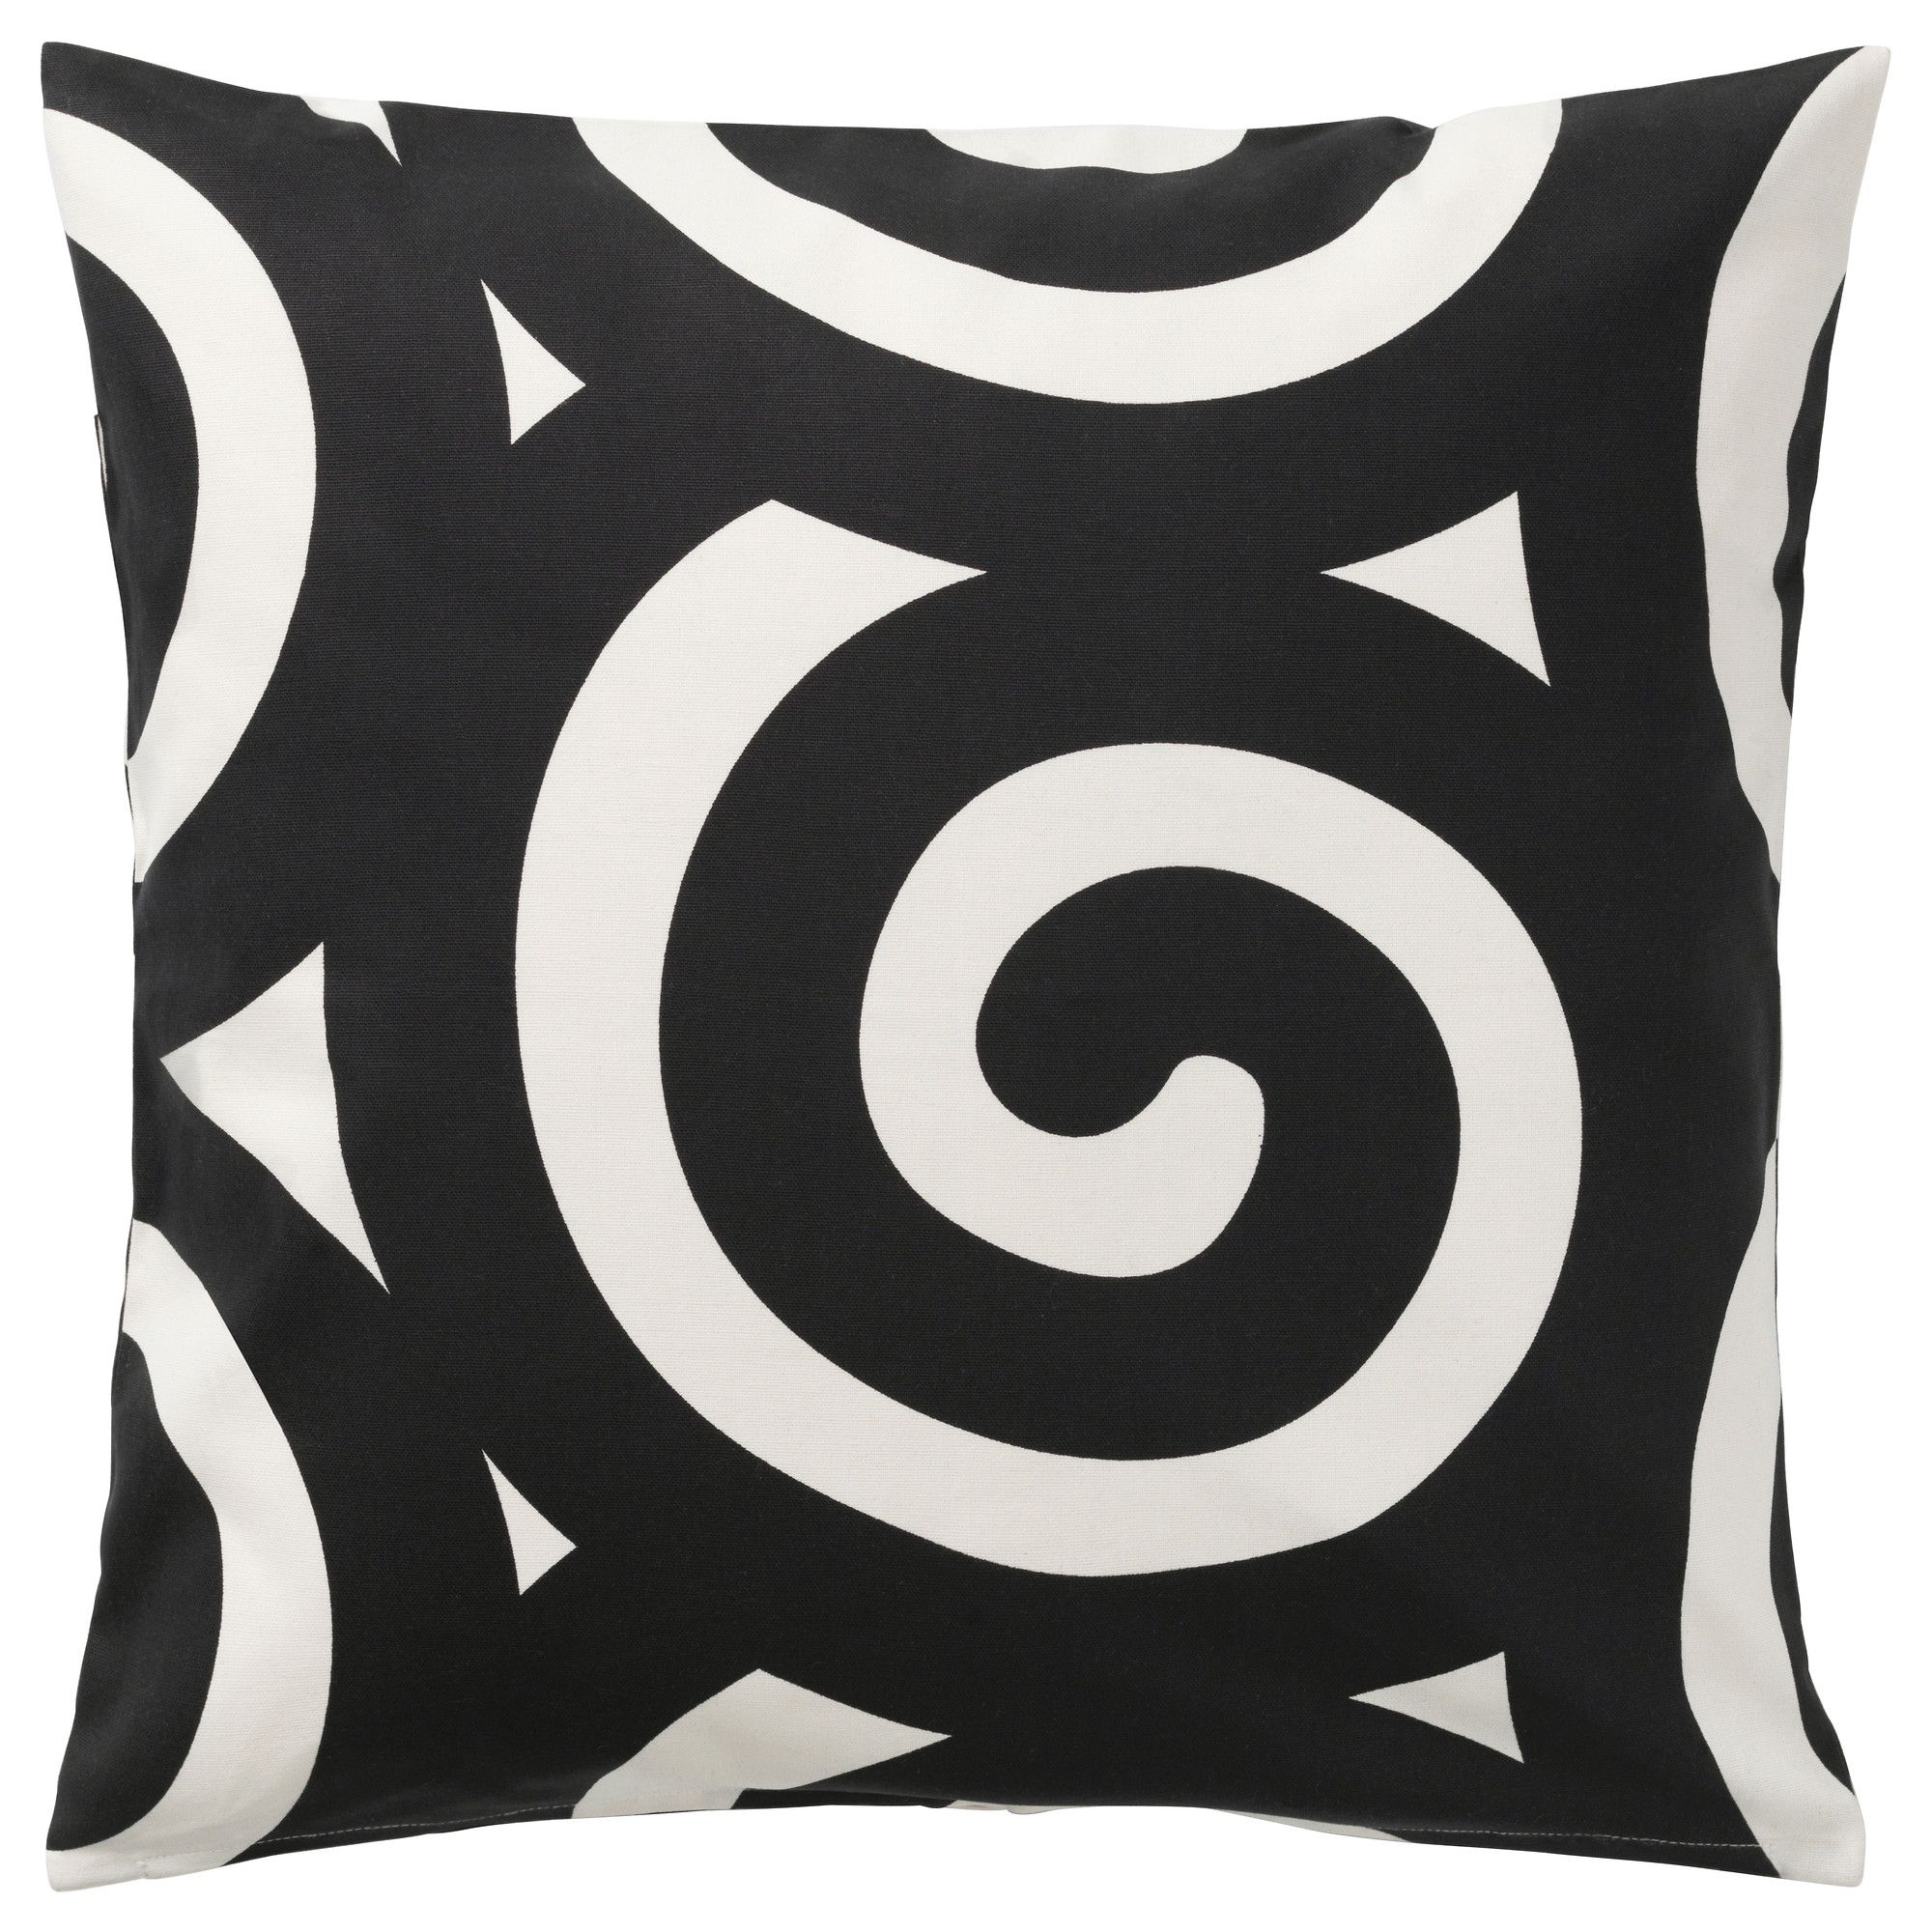 Refresh any room with bold pillows The IKEA TR…DKL–VER cushion